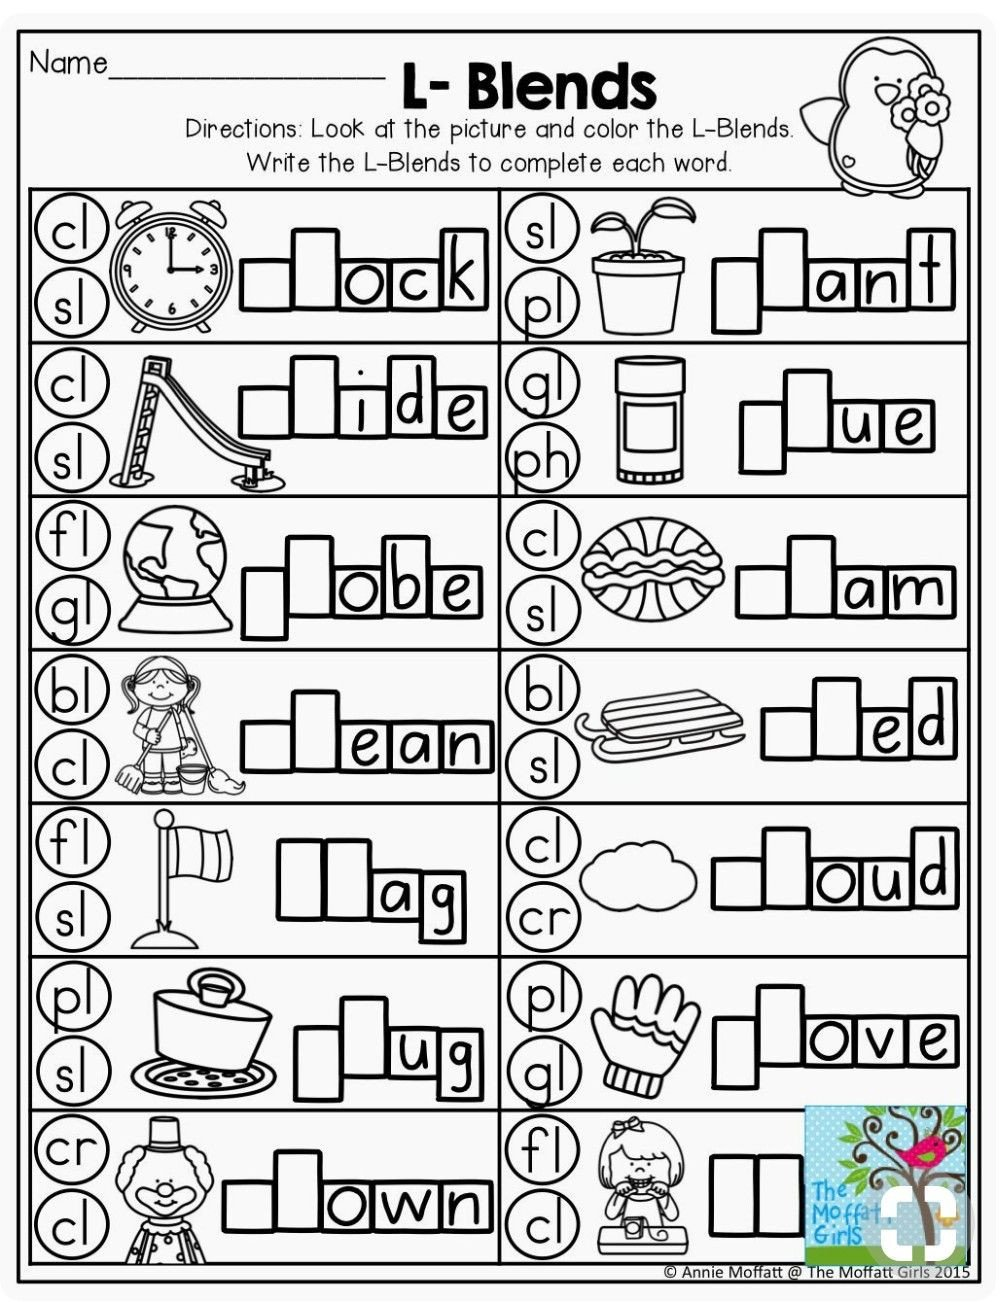 awesome 1st grade phonicsrksheets image ideas special sounds blends first